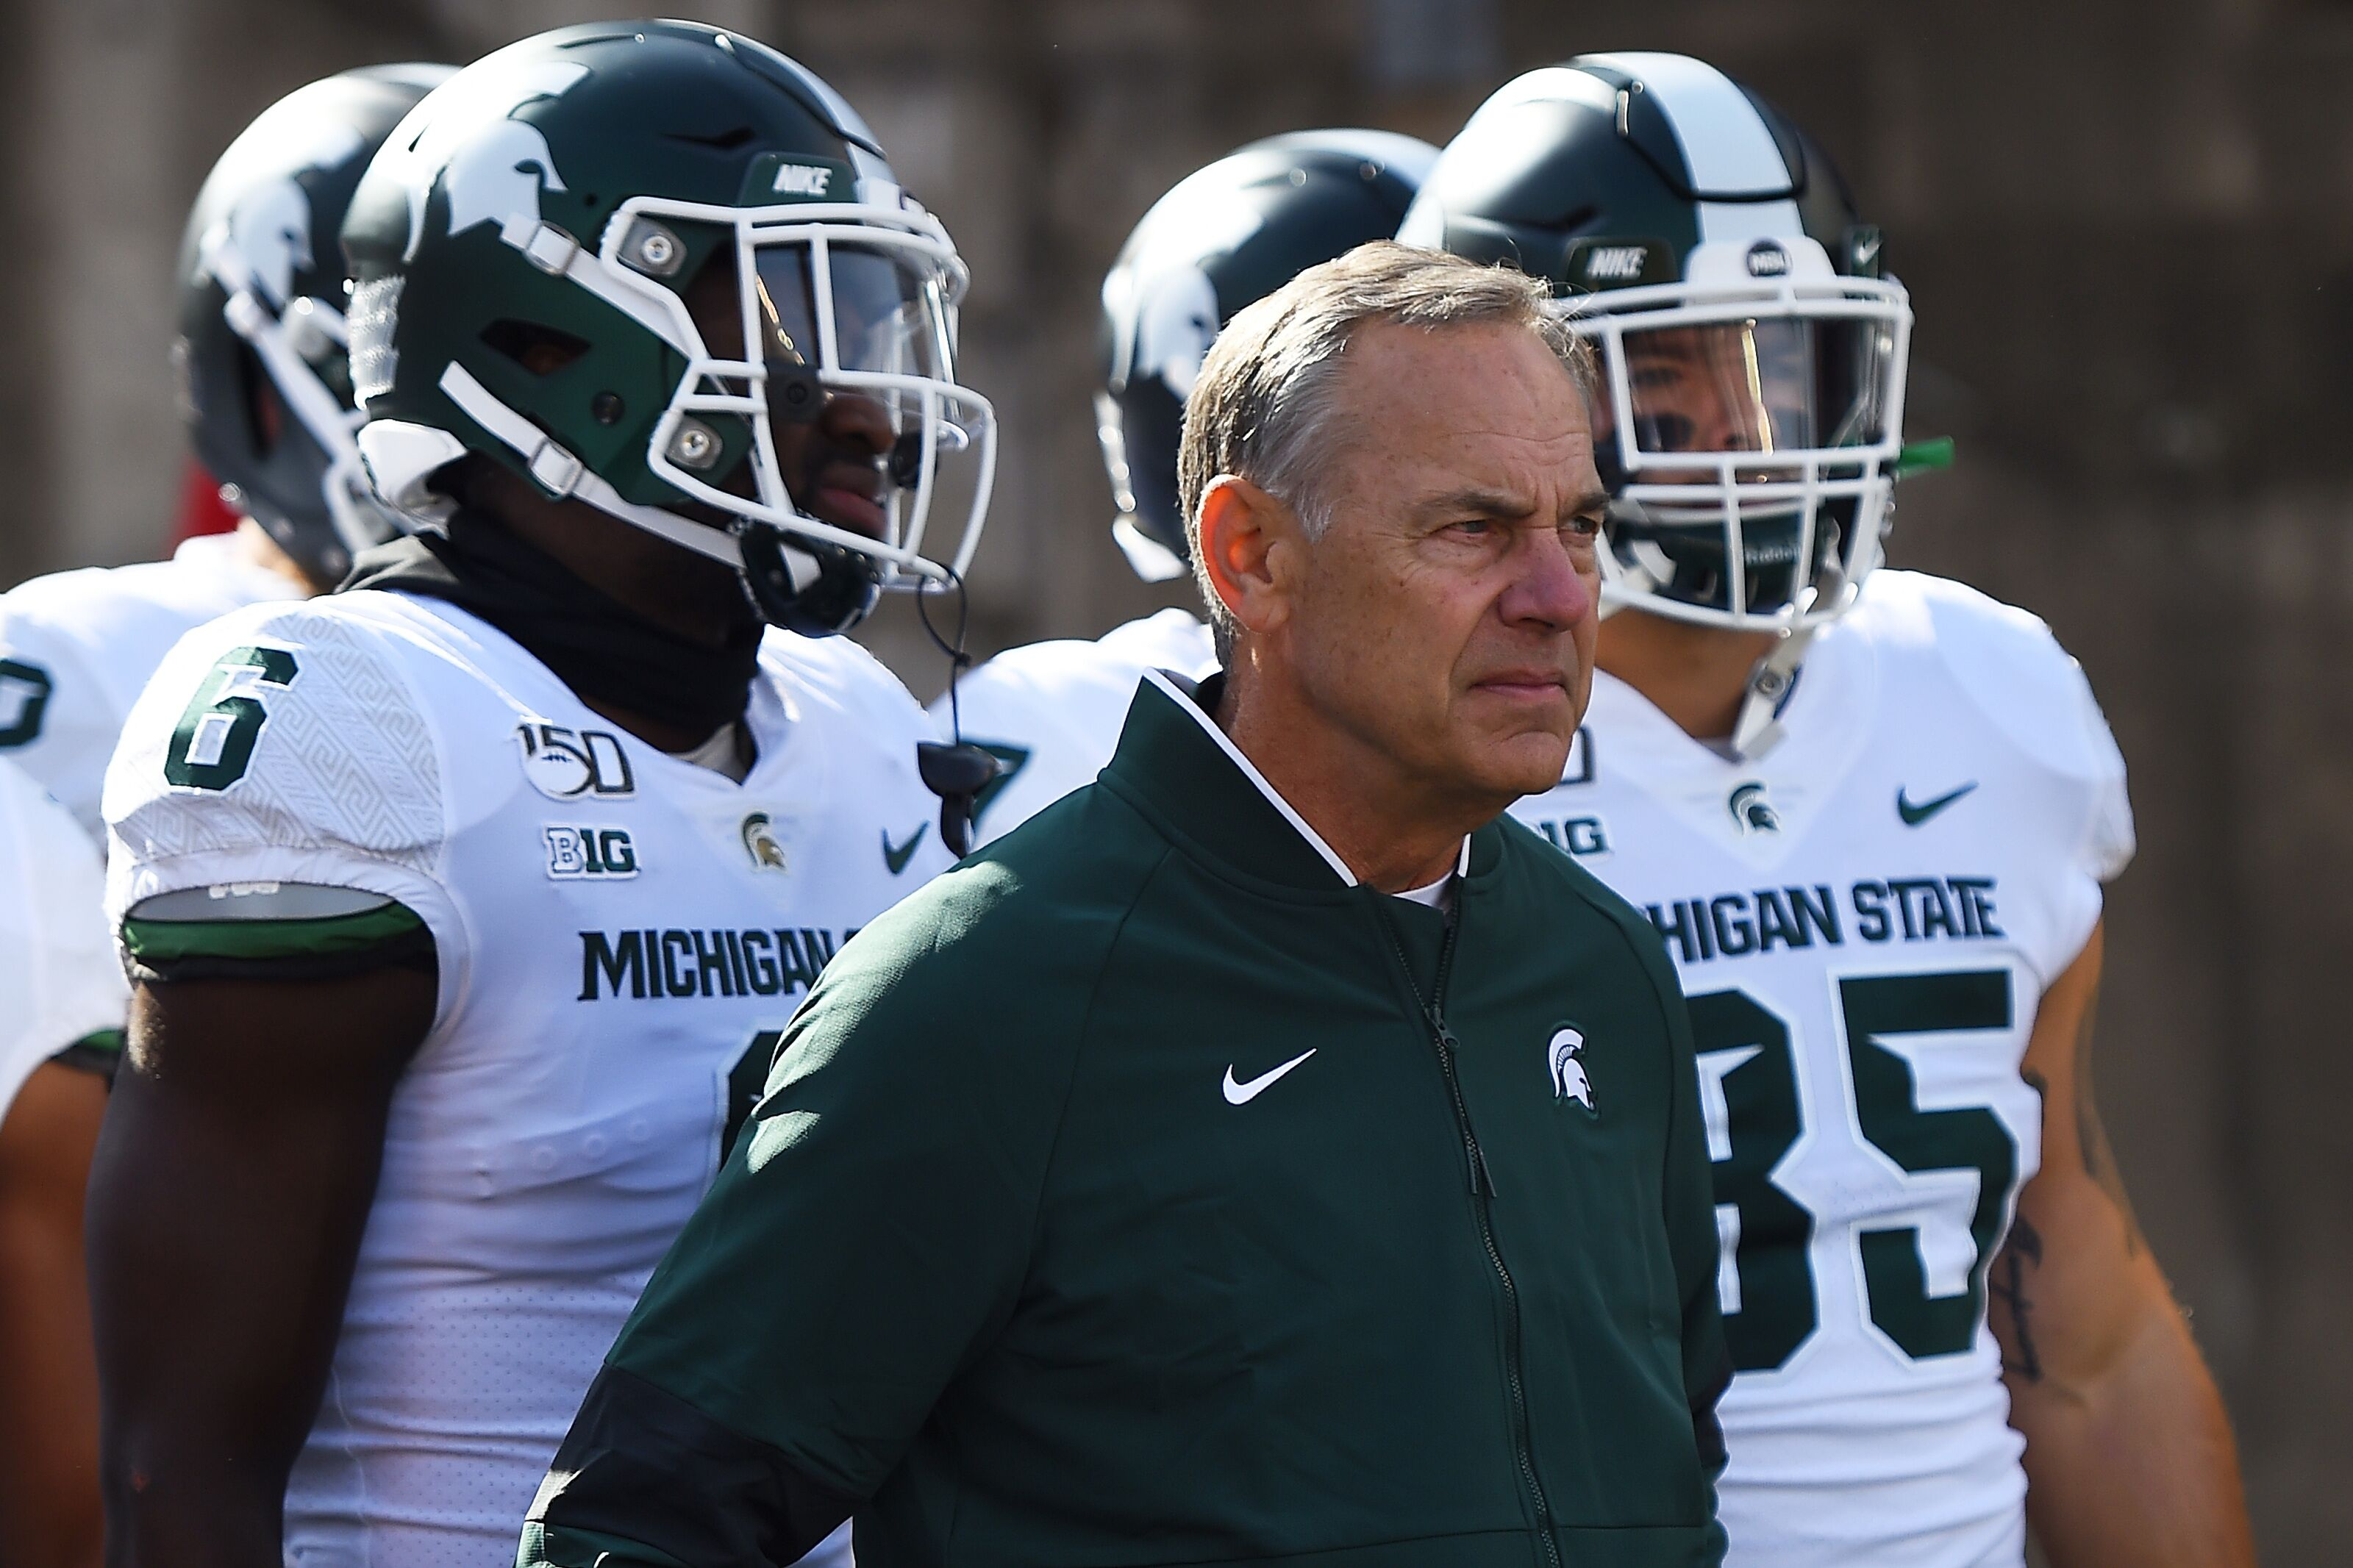 Mark Dantonio doesn't have it anymore, Michigan State needs to move on